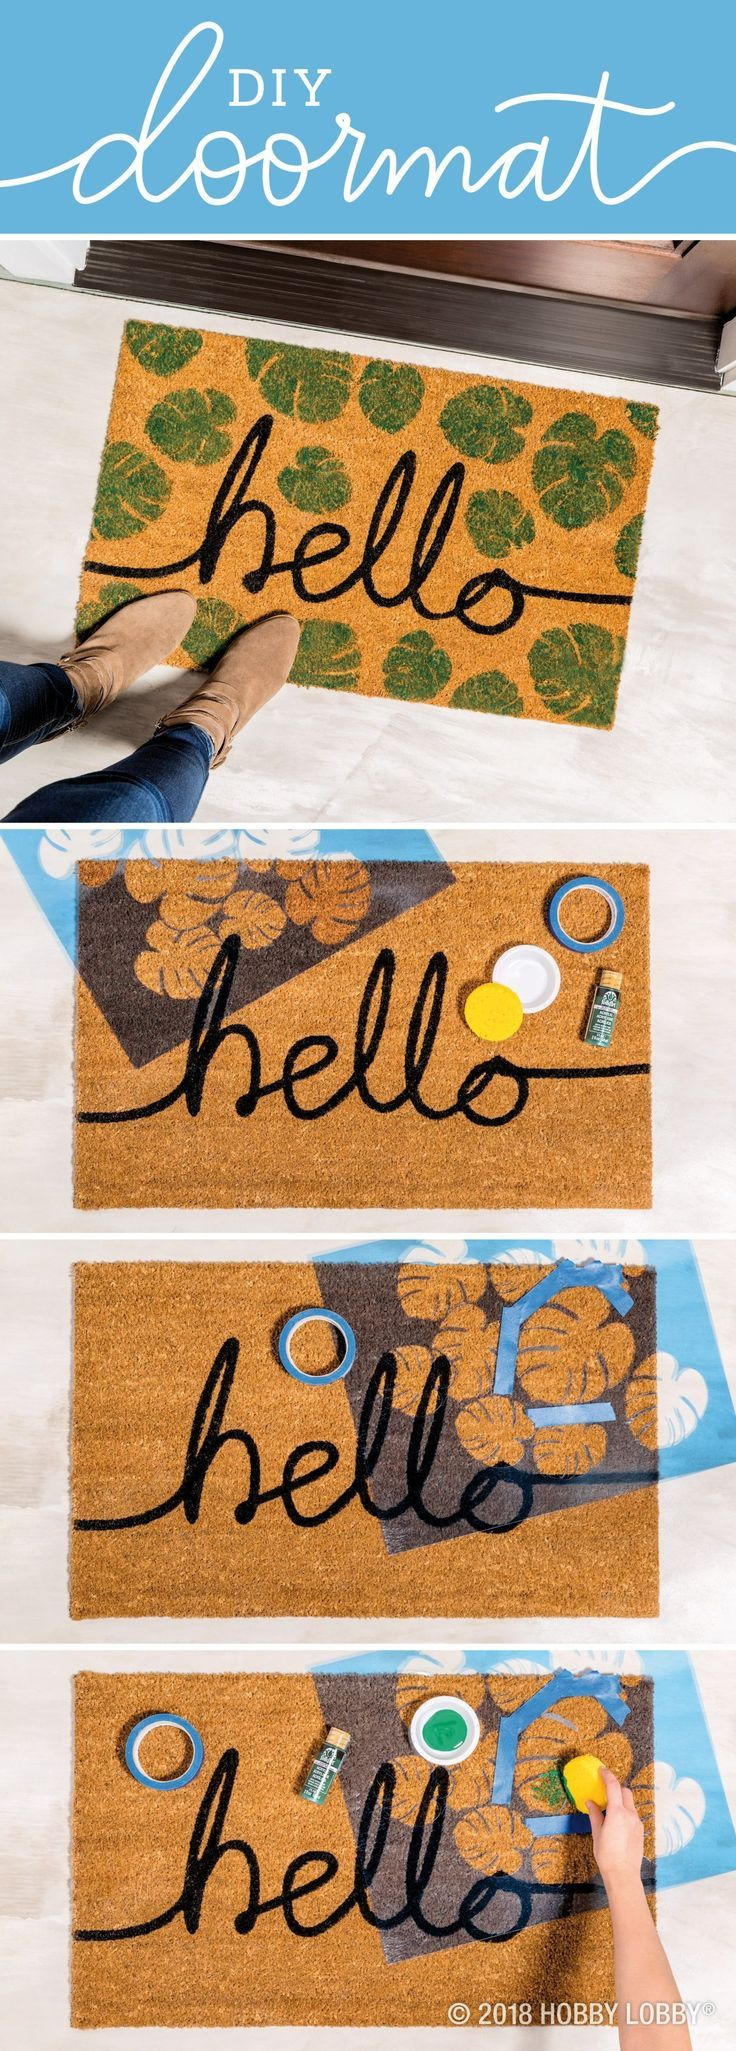 Give Your Guests A Tropical And Trendy Welcome With This Easy Diy Doormat 1 Position And Tape Stencil In Place 2 Sp Hobby Lobby Crafts Stencil Diy Door Mat